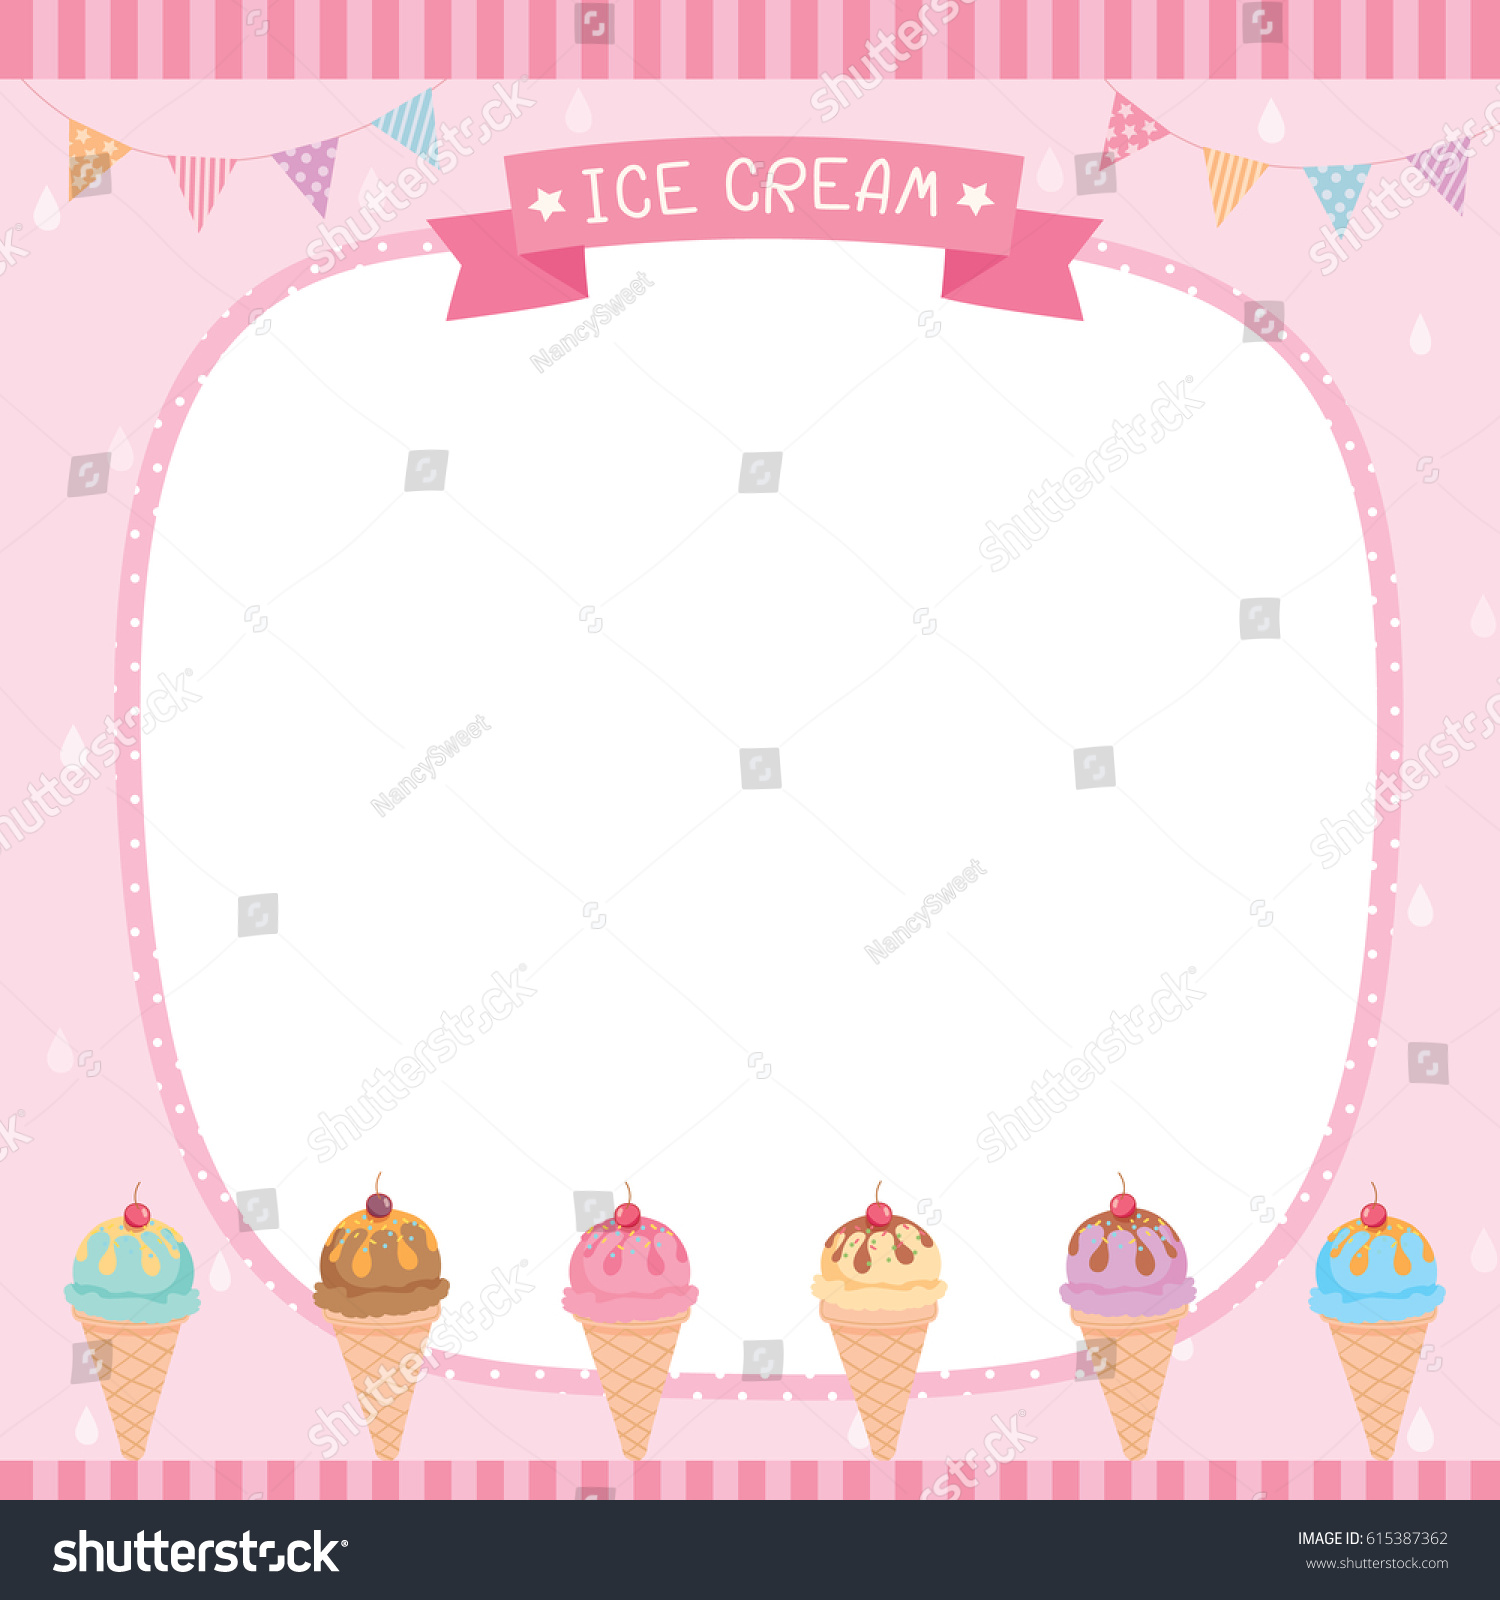 Ice Cream Cones Background Royalty Free Vector Image: Ice Cream Cone Menu Template Pink Stock Vector 615387362